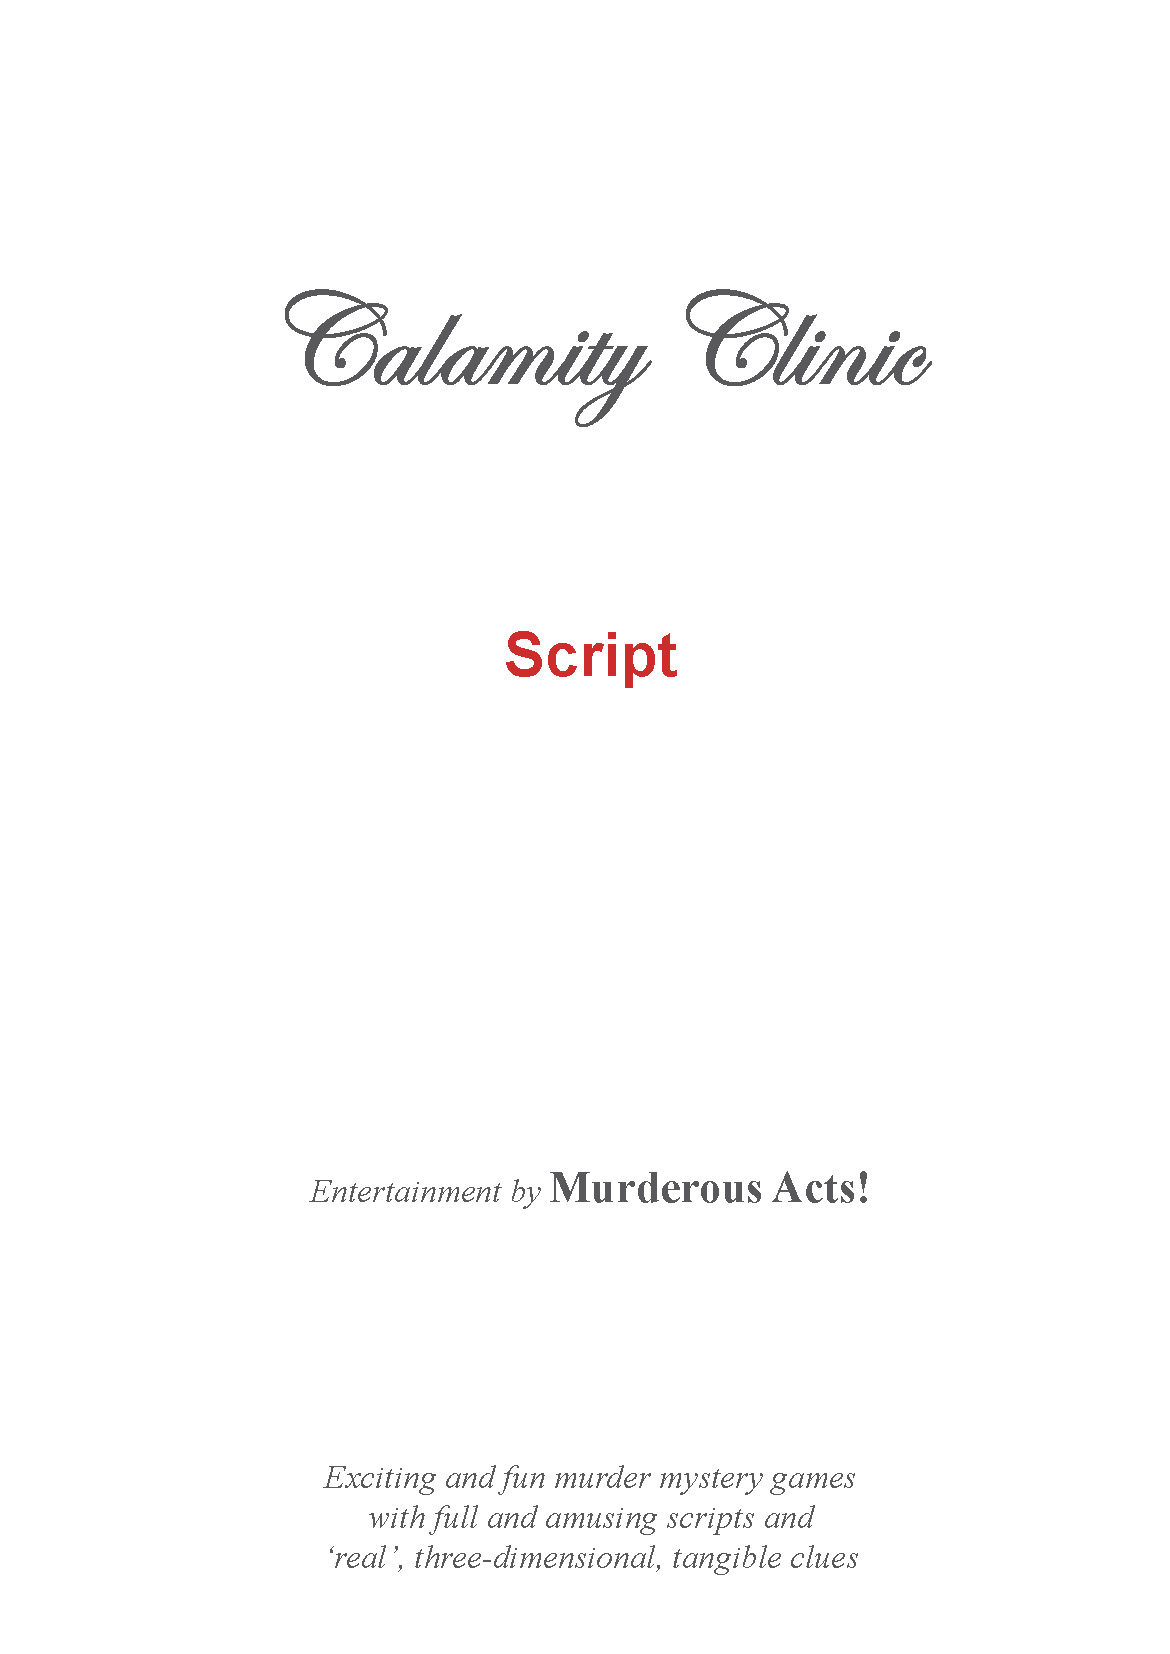 Cosmetic clinic murder mystery game script preview